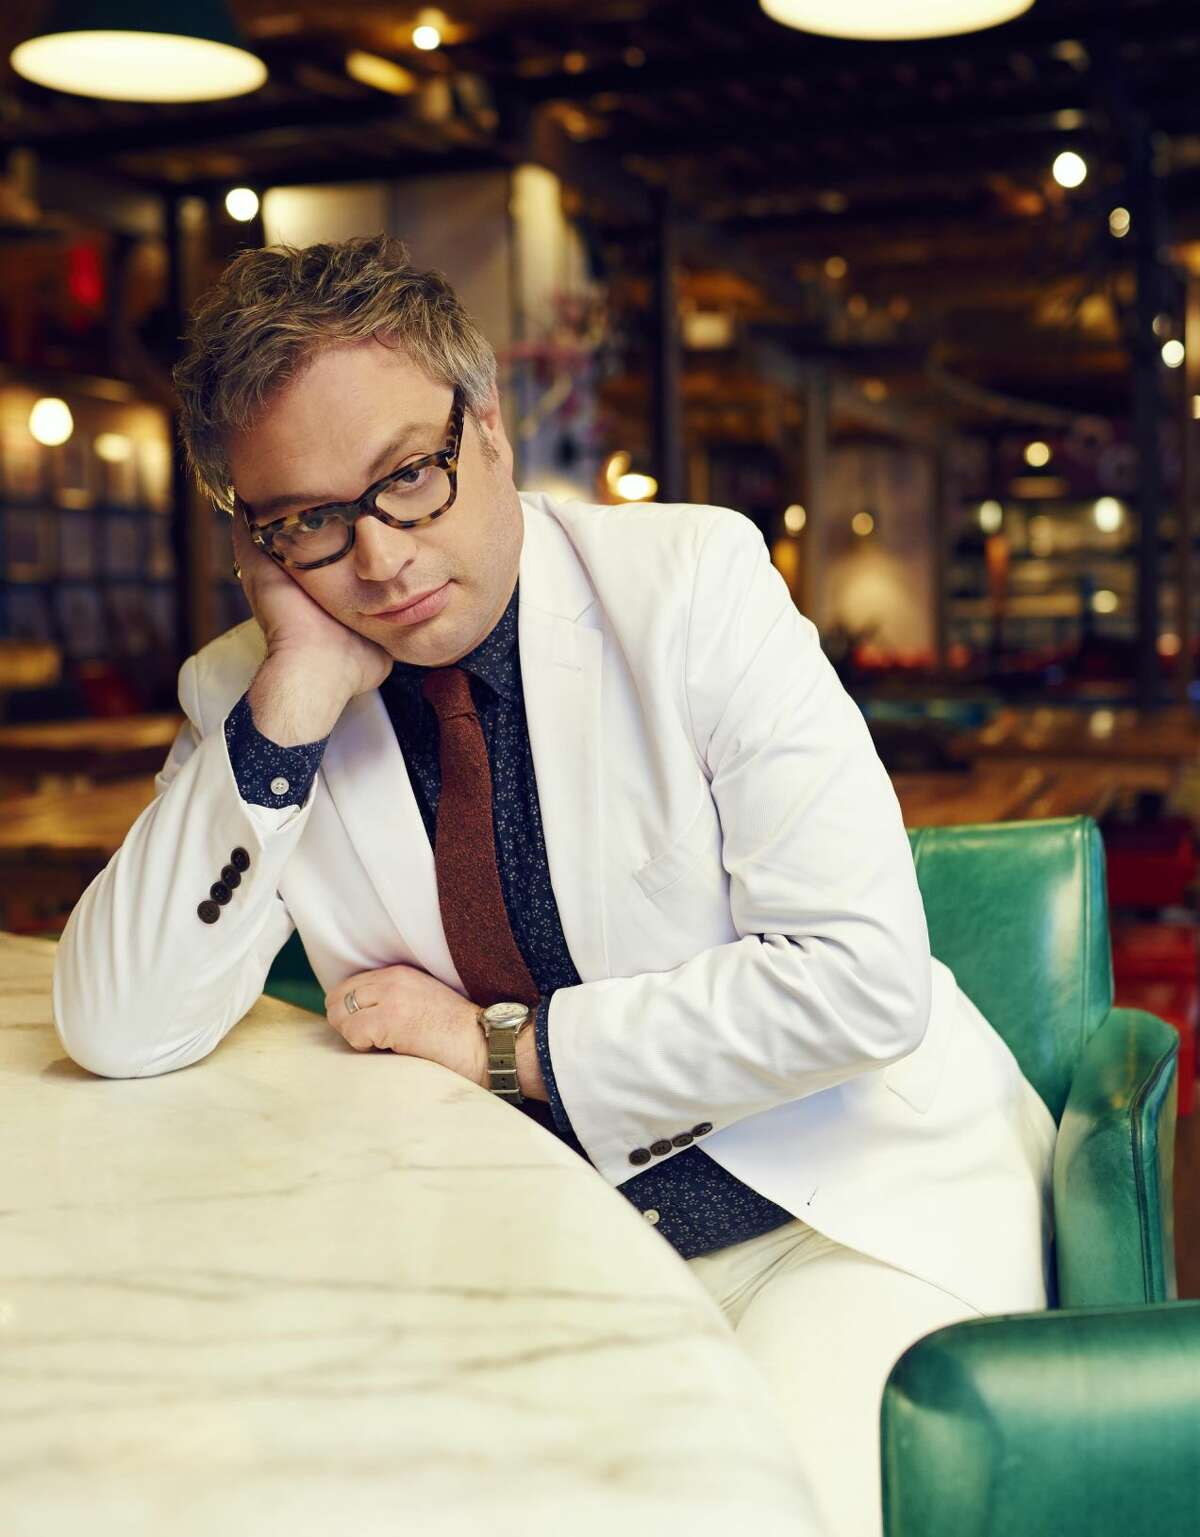 Steven Page, formerly of the Barenaked Ladies, is appearing at Fairfield Theater Company's Stage One on Monday, April 4.